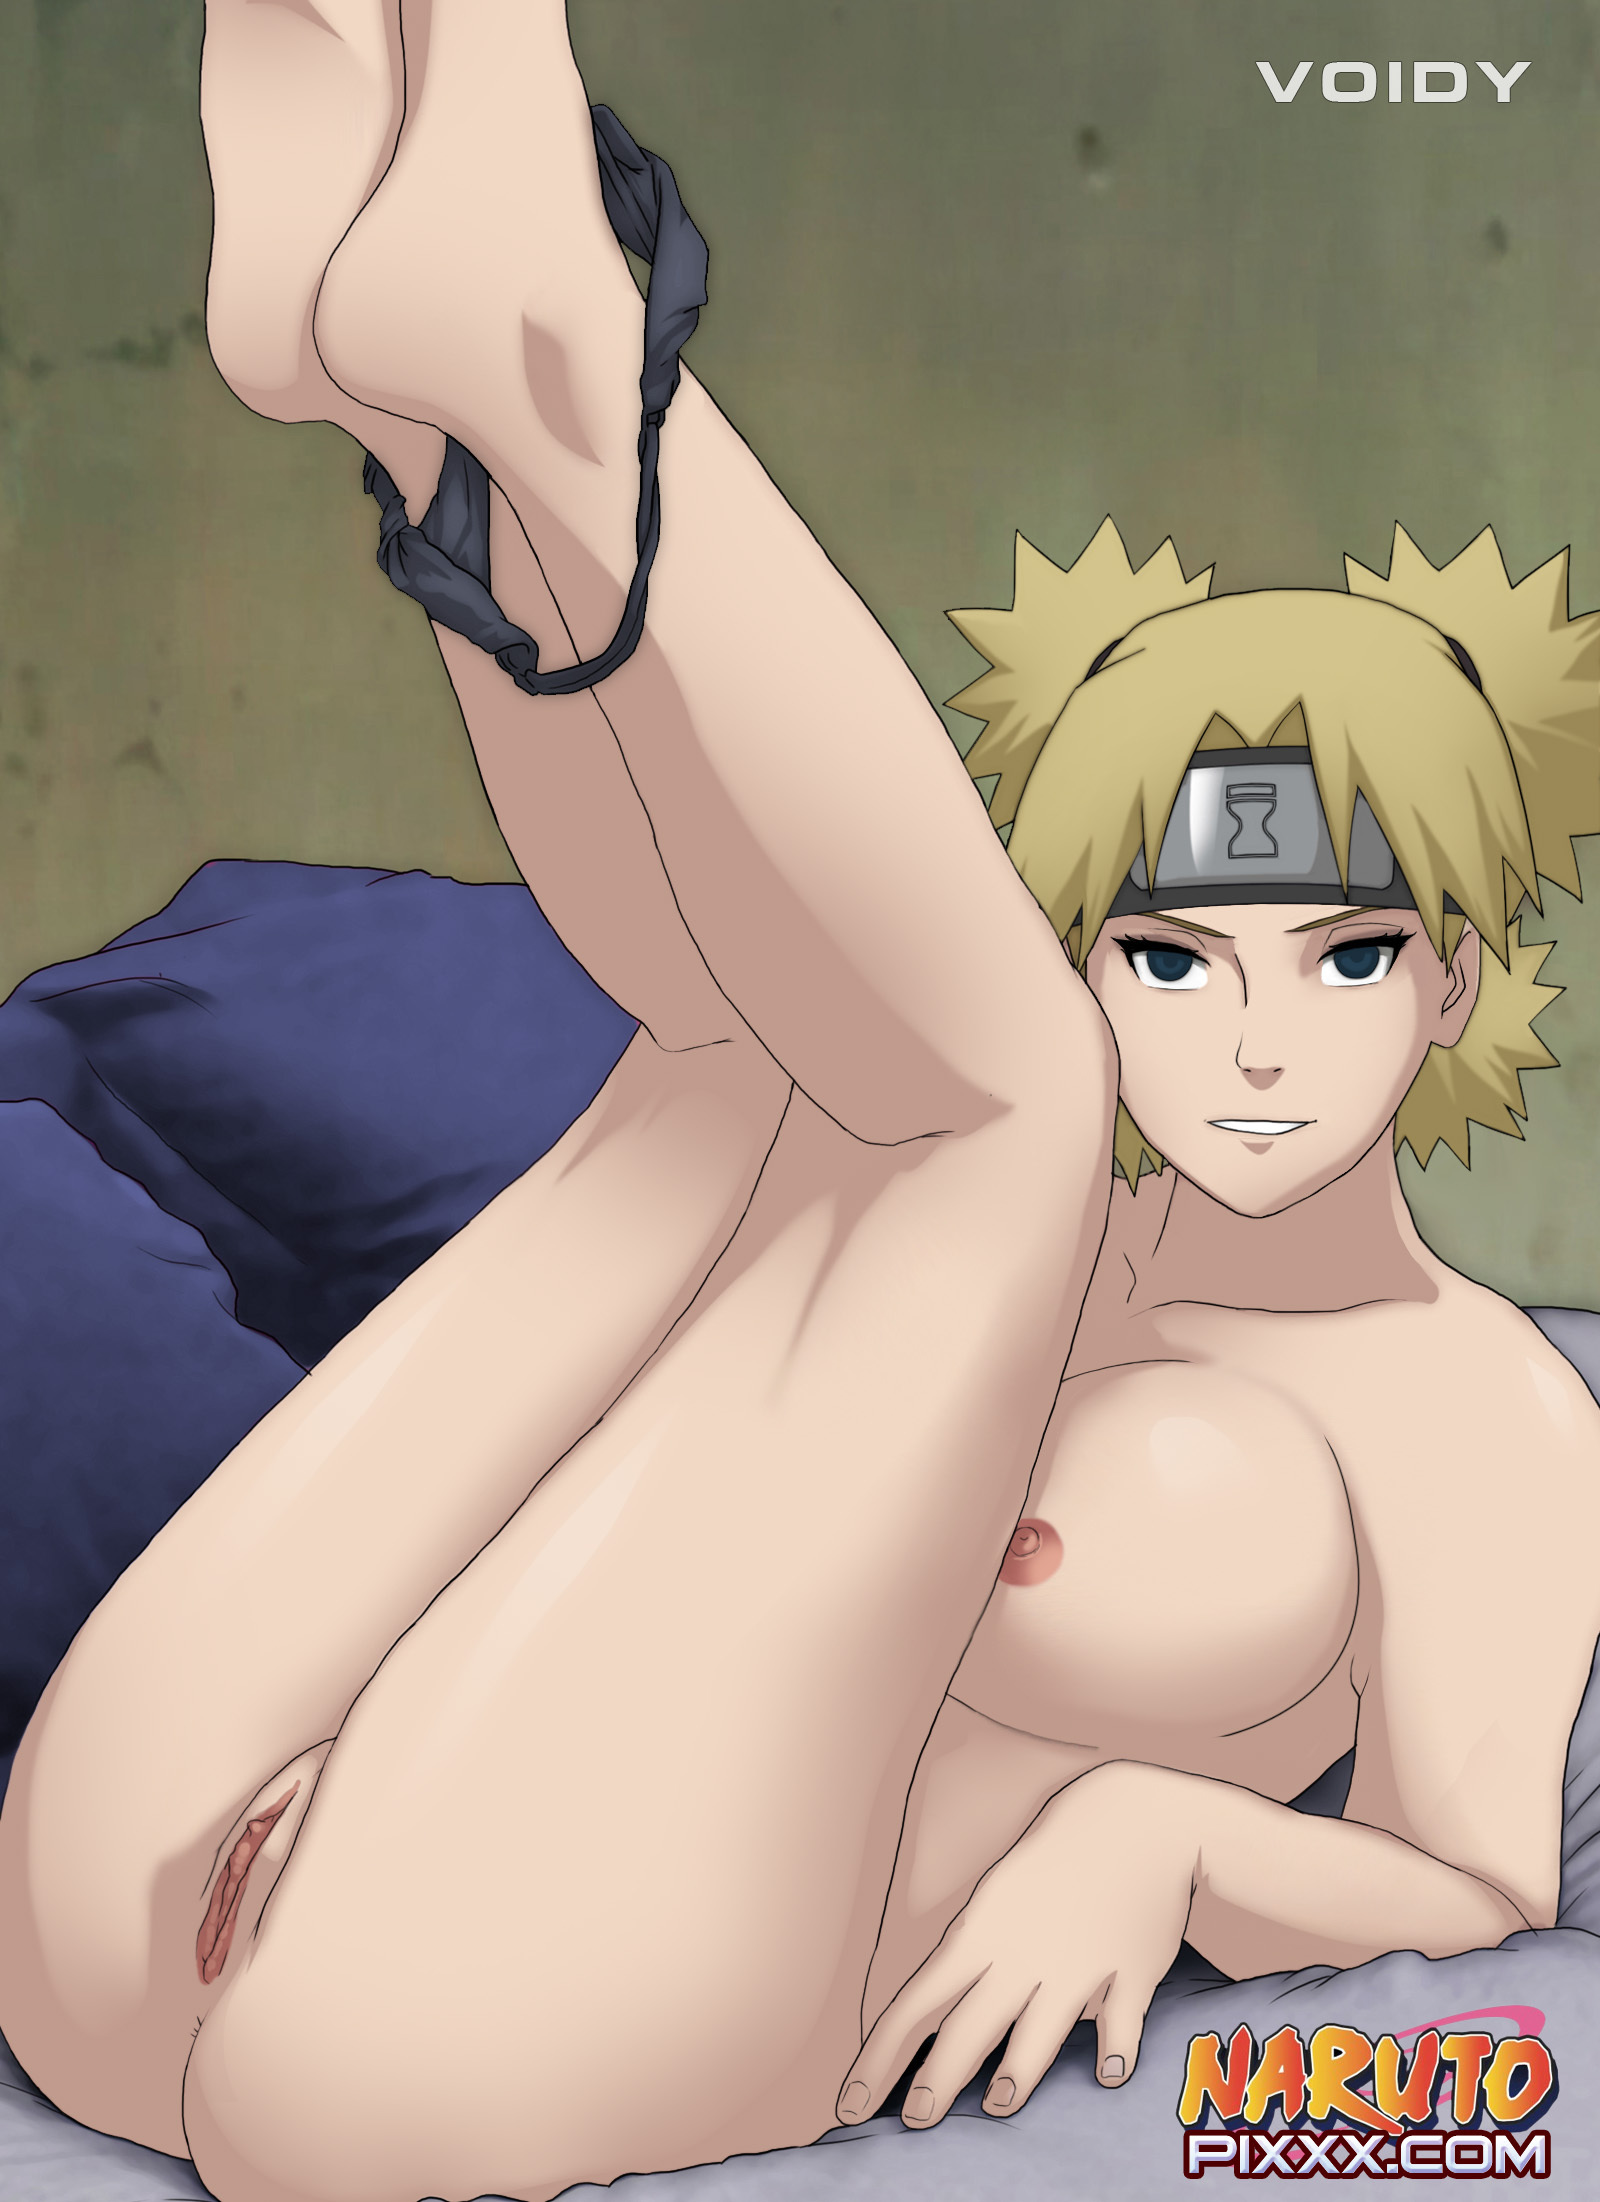 Sexy naruto sex girls naked